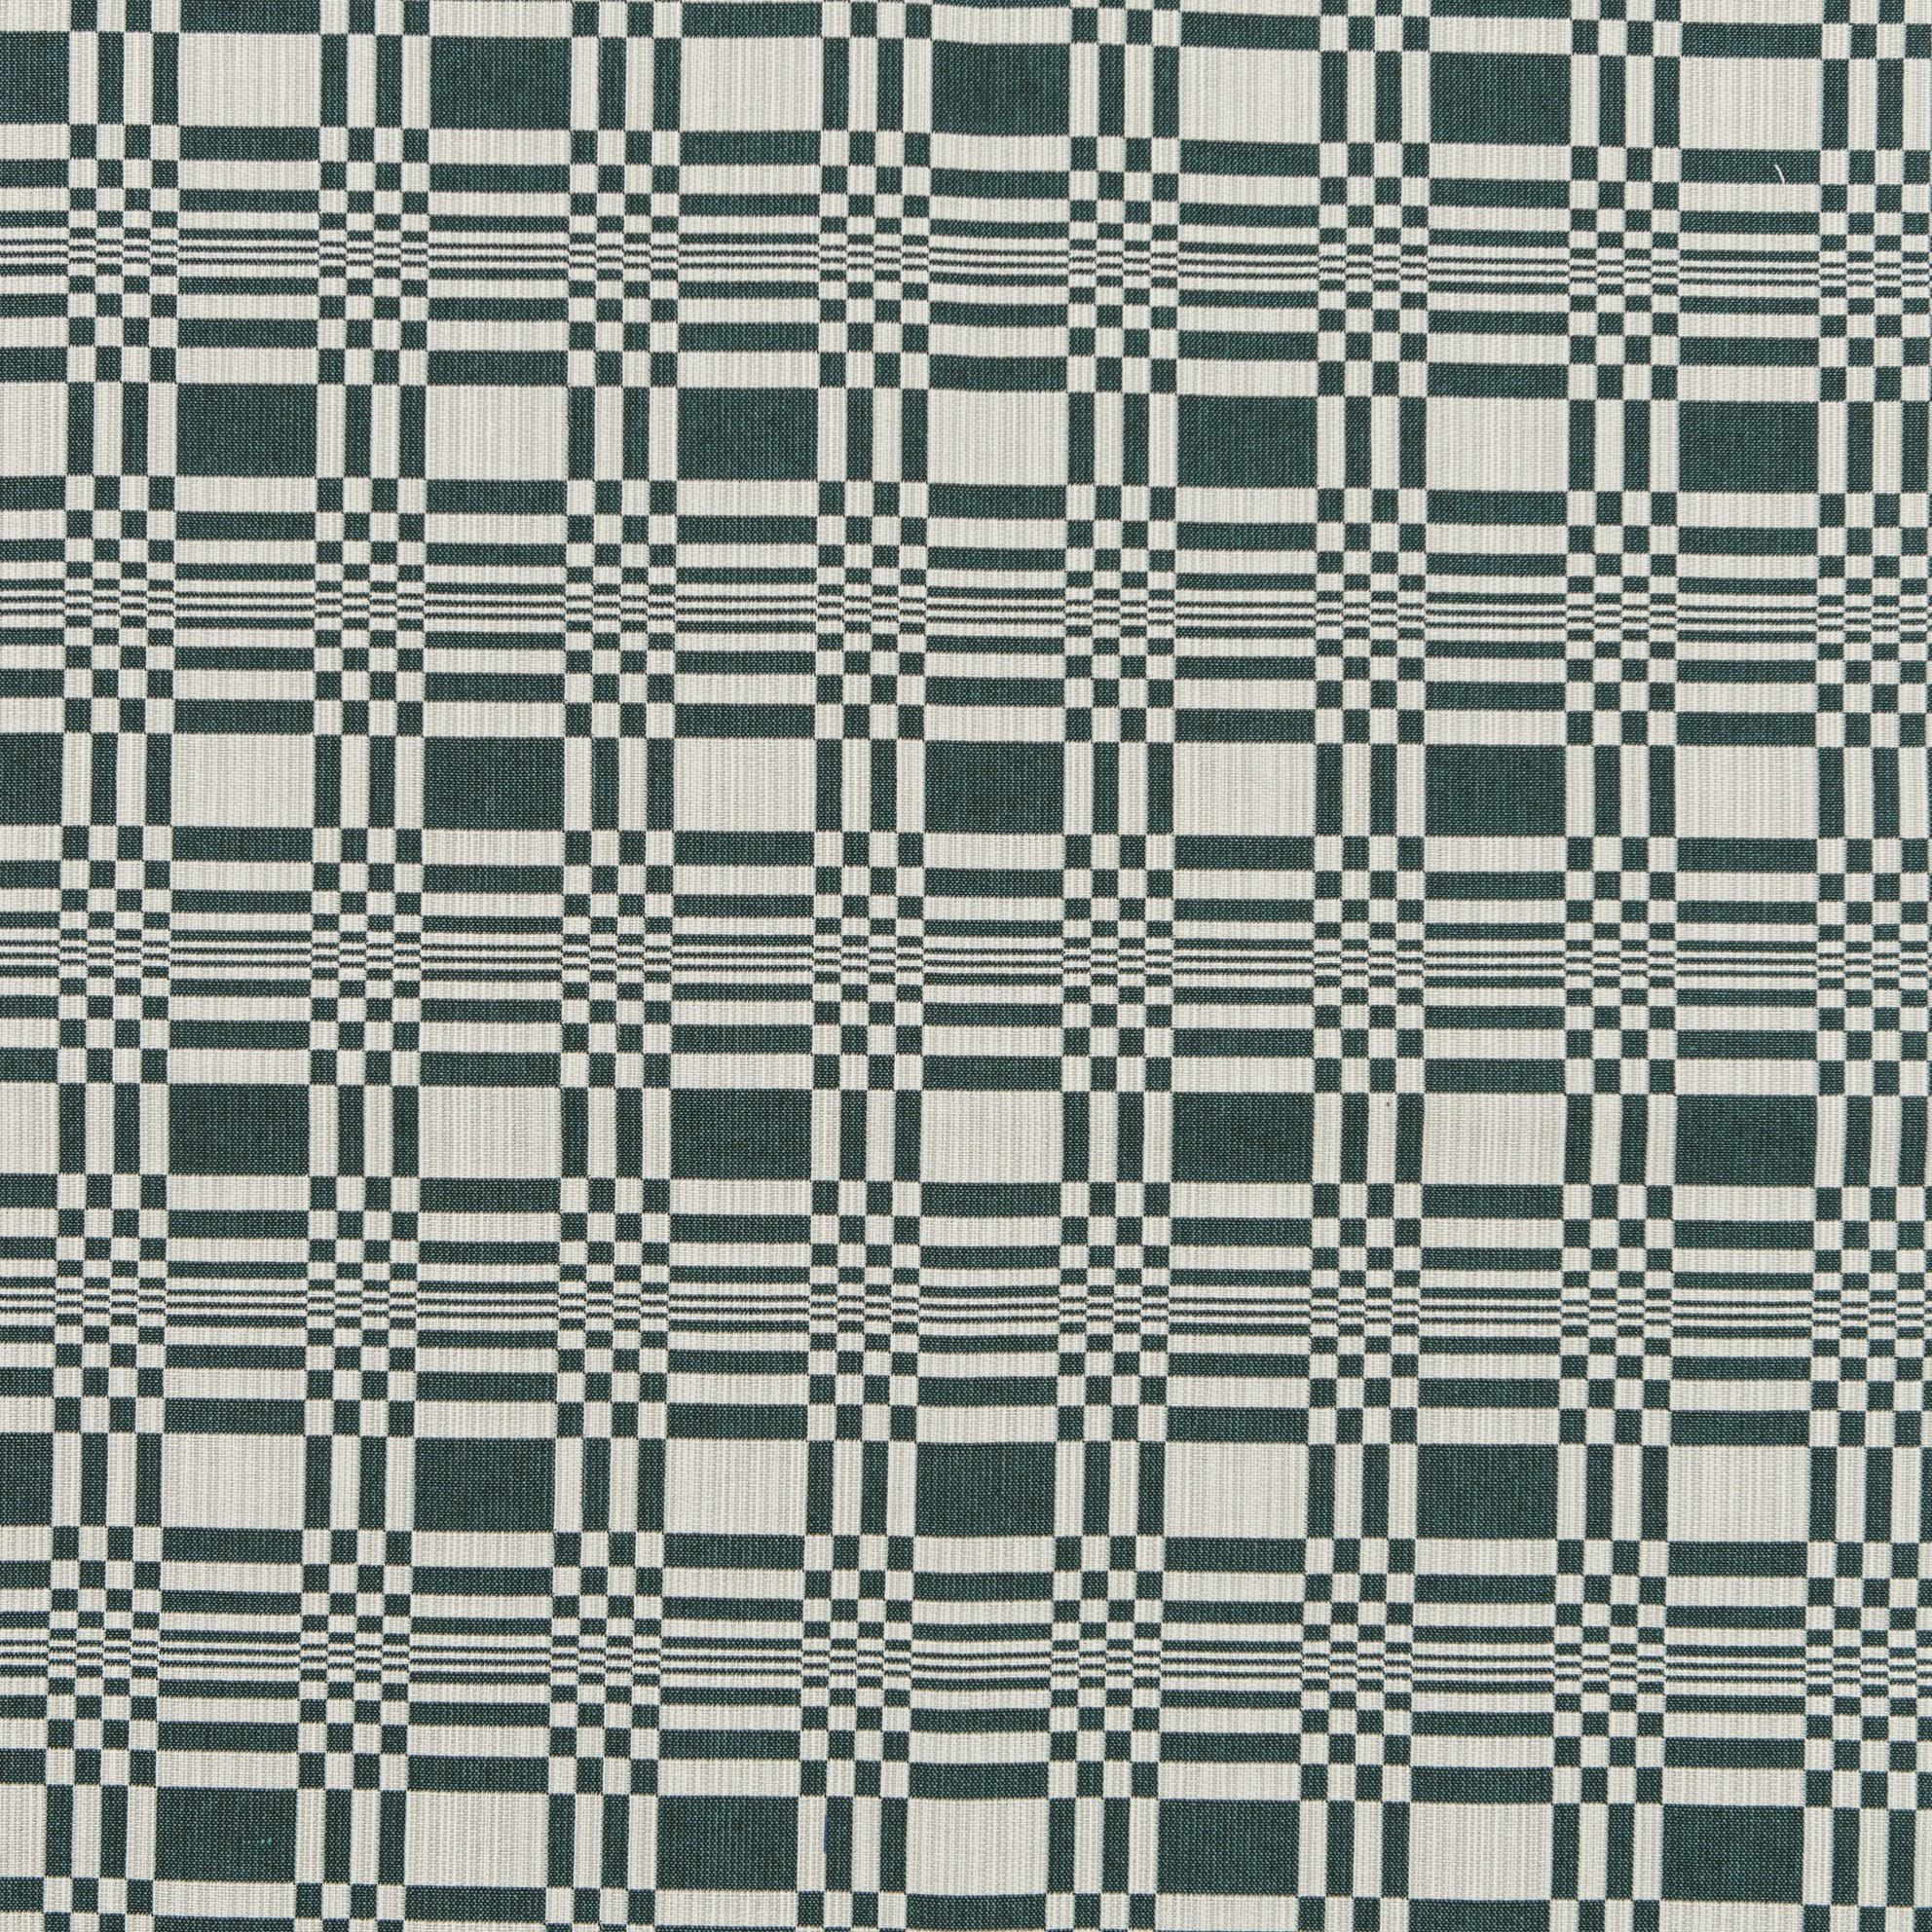 Cotton Fabric Doris - Dark Green | Nicholas Engert Interiors